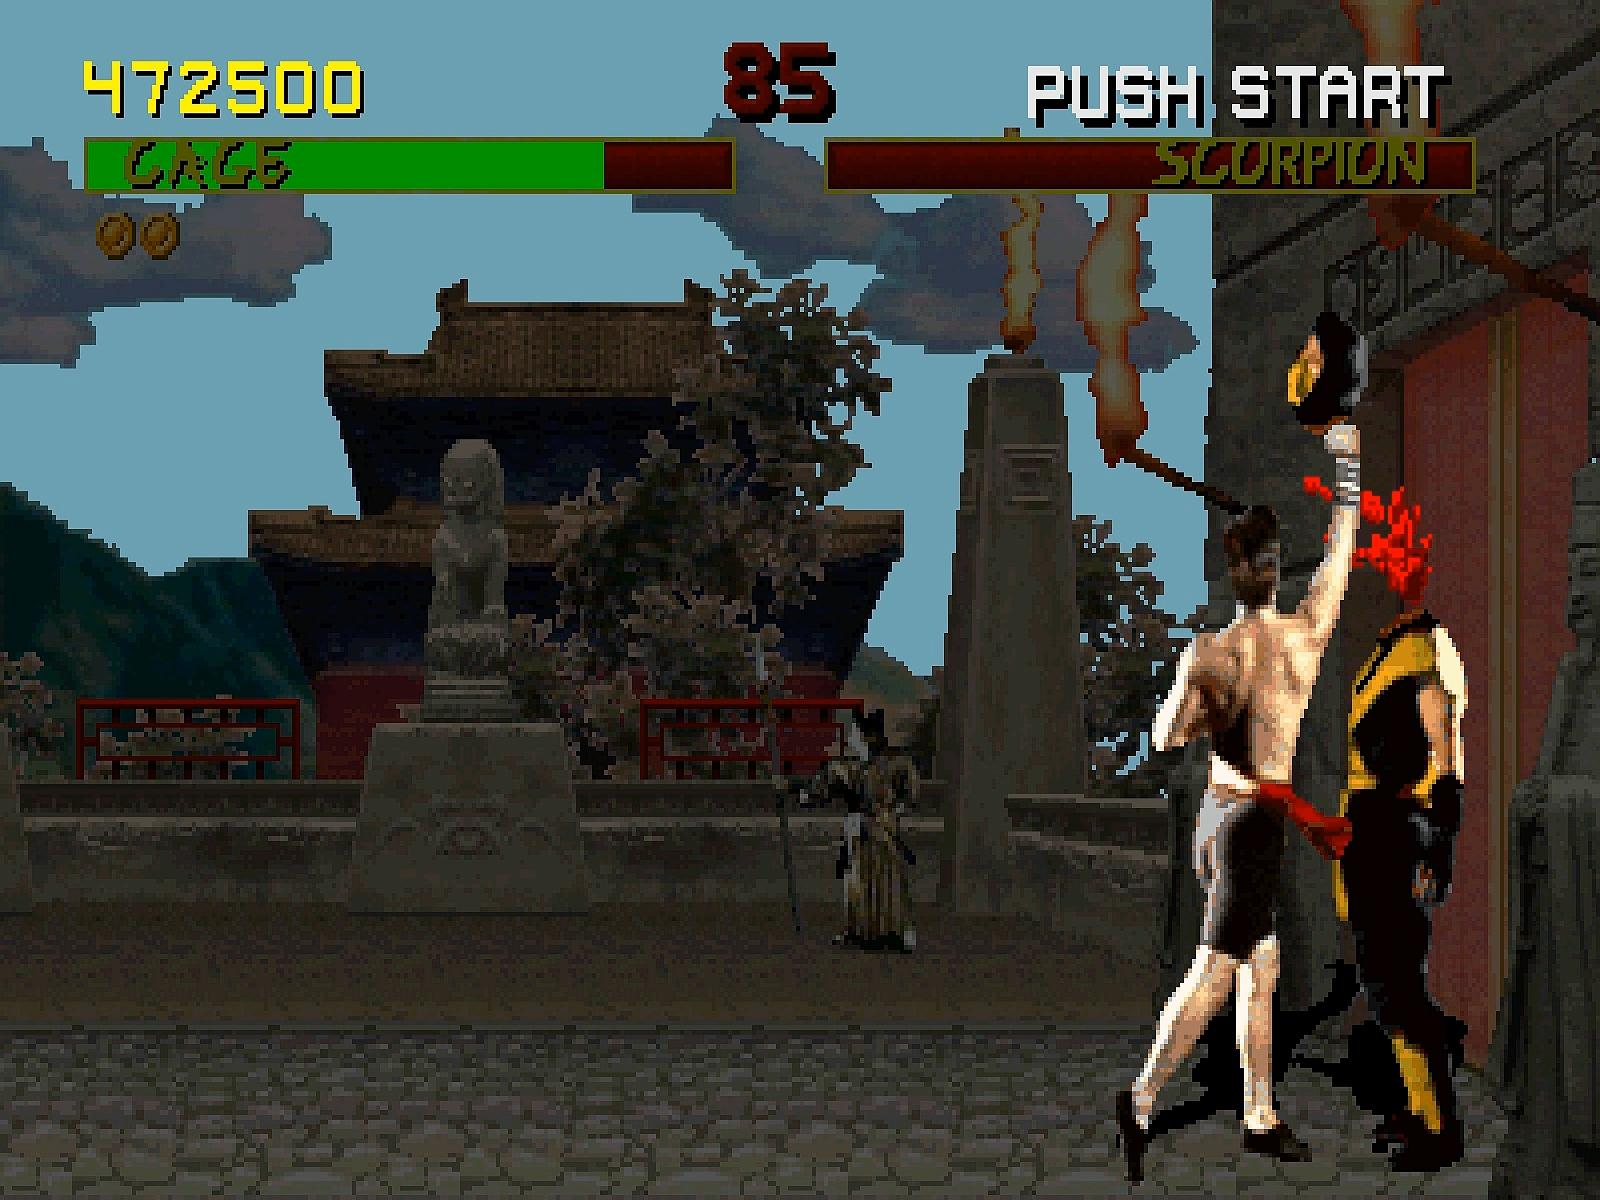 A scene from the video game Mortal Kombat.